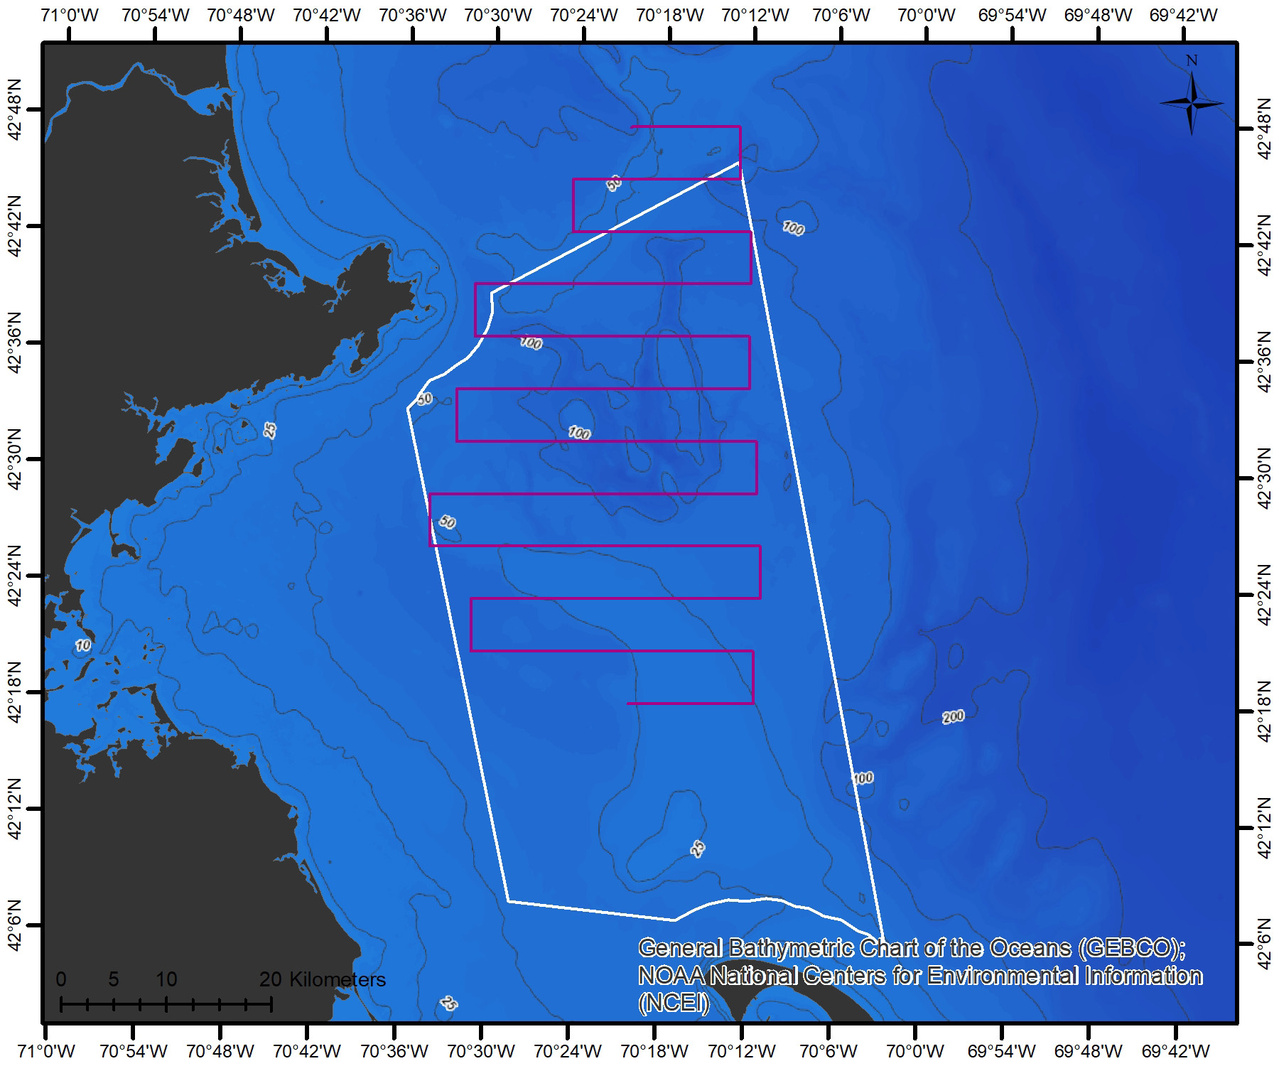 Map showing proposed glider tracks inside boundaries of  Stellwagen Bank National Marine Sanctuary off Massachusetts